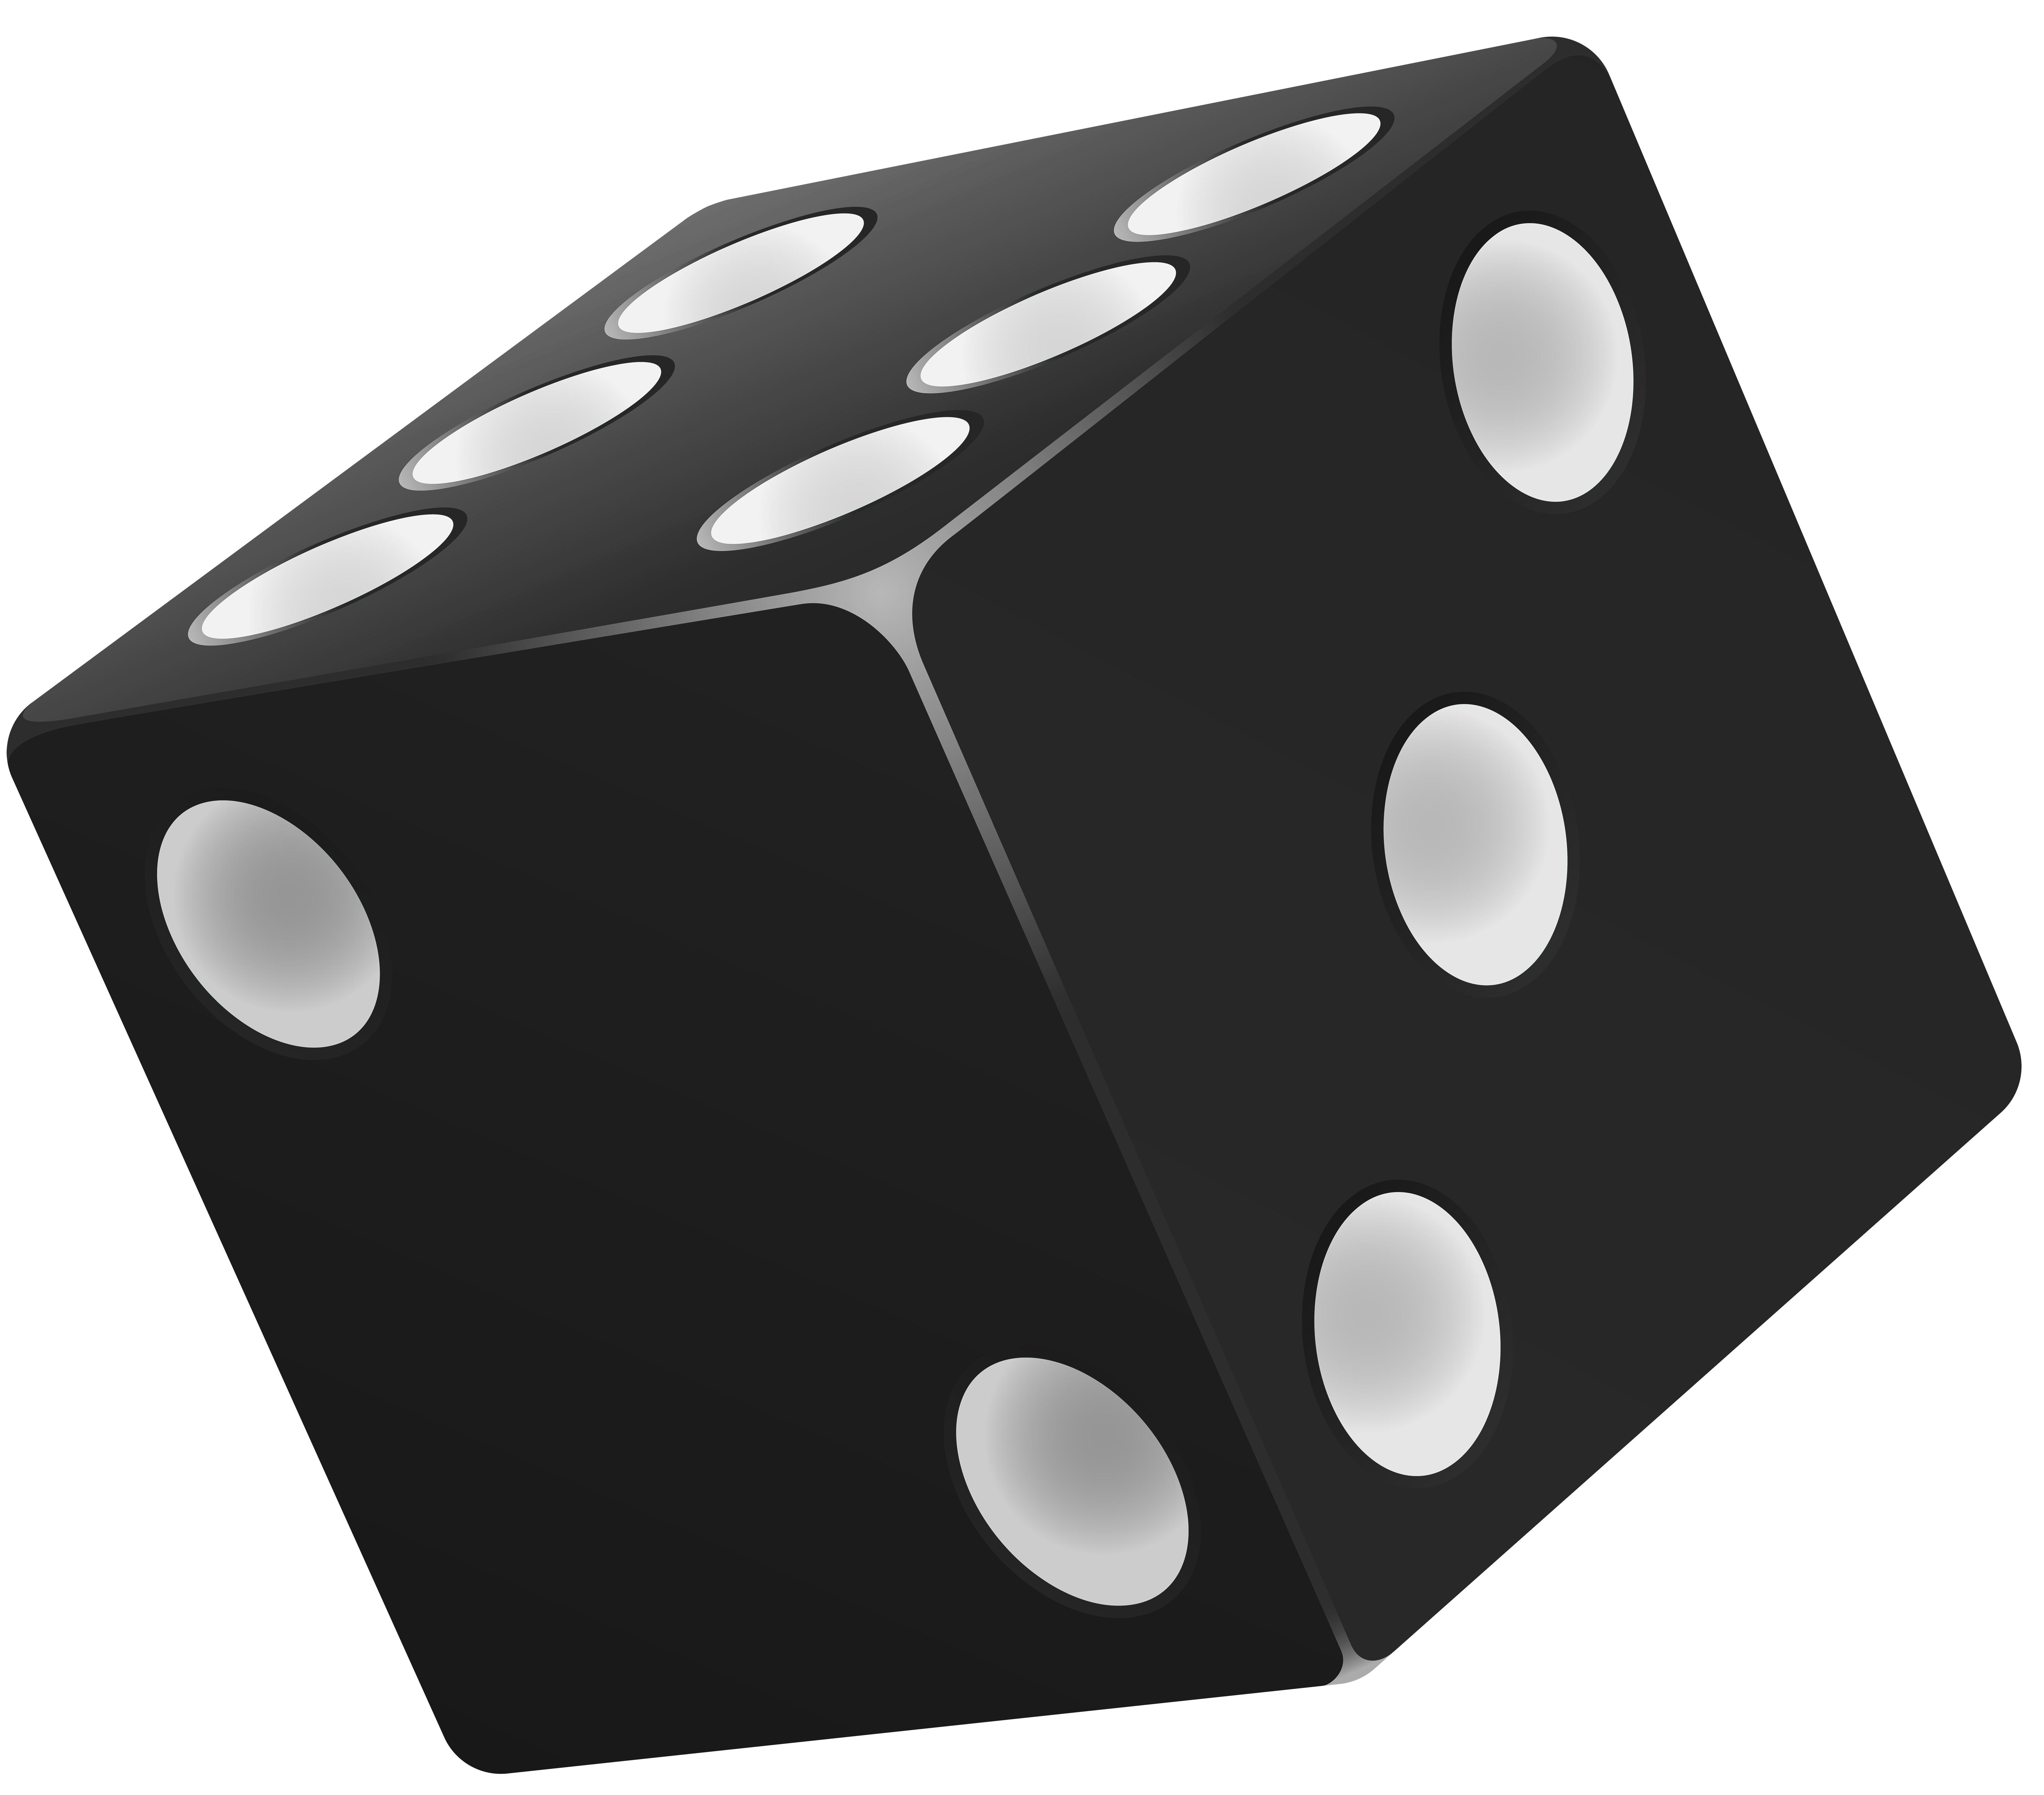 clip art royalty free Dice png clip art. Game clipart black and white